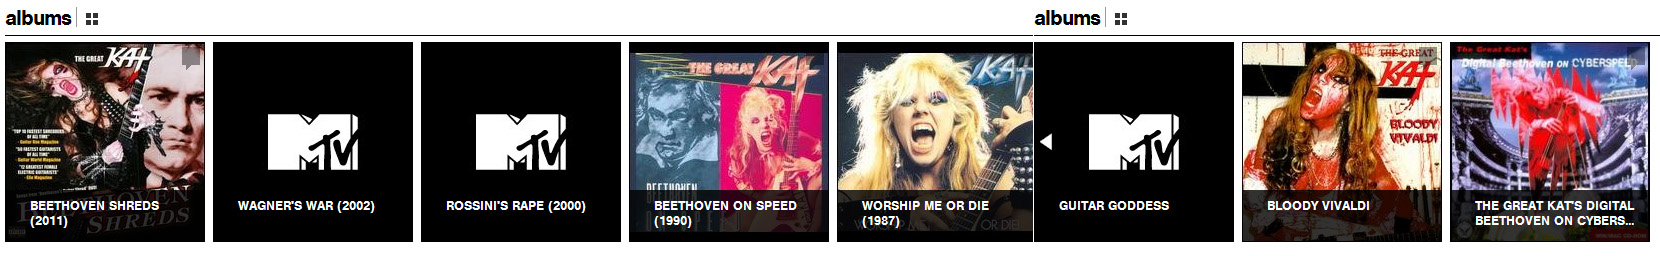 MTV ARTISTS FEATURES THE GREAT KAT'S SHRED/CLASSICAL MASTERPIECE CDS!